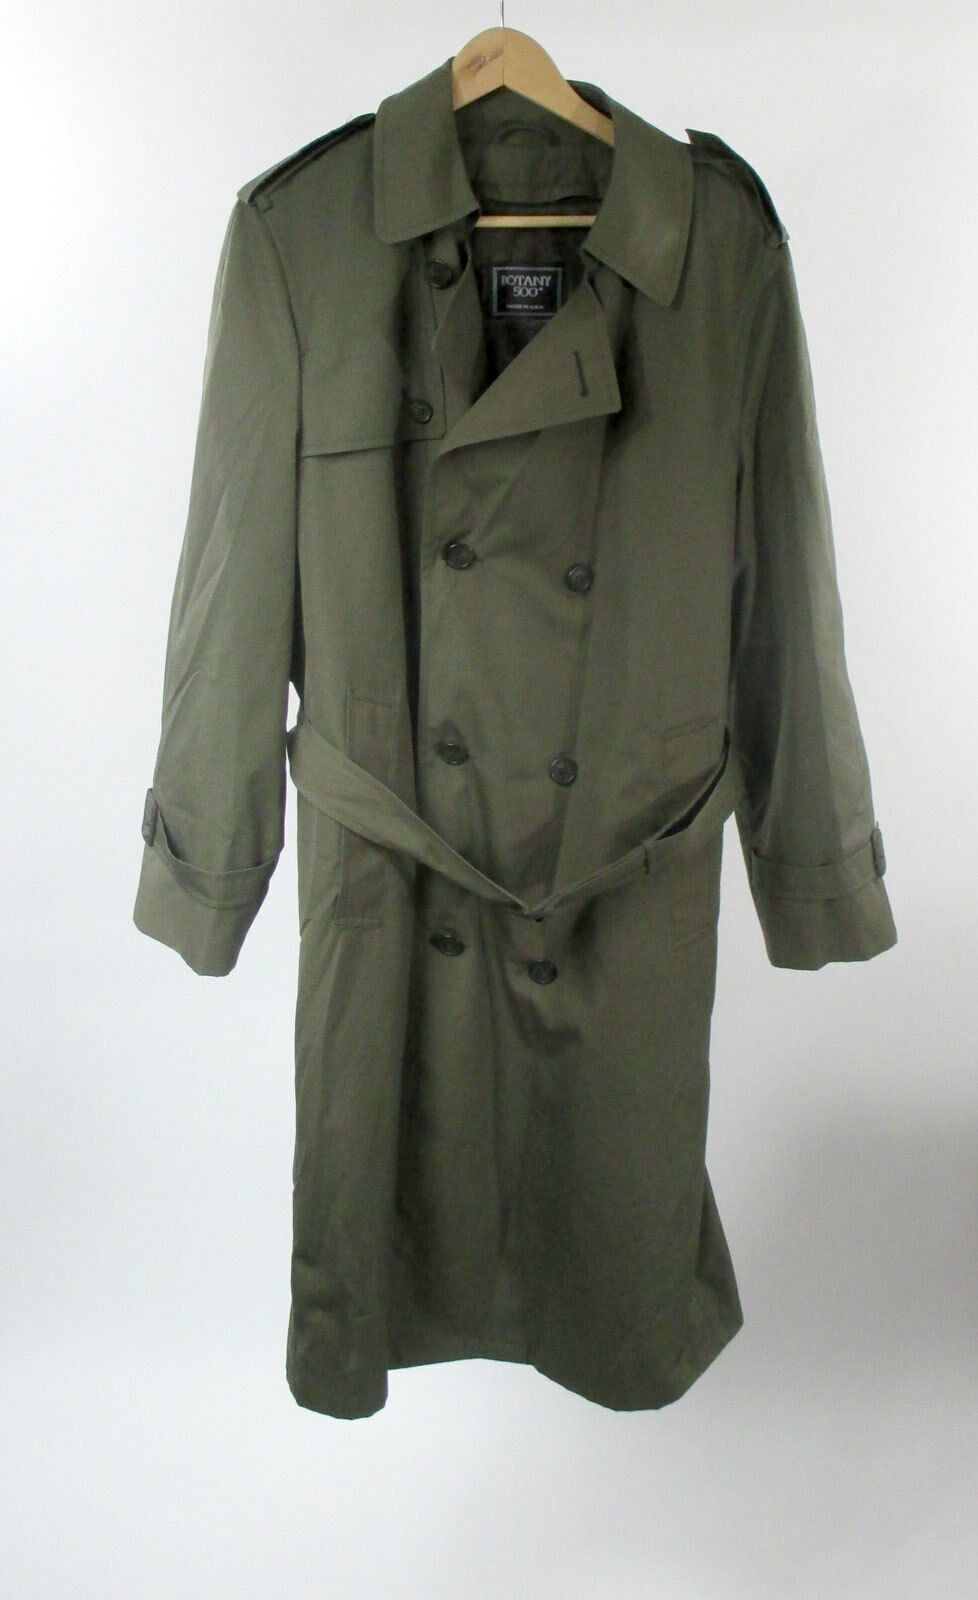 Botany 500 Trench Coat 38 R USA Made Olive Green B